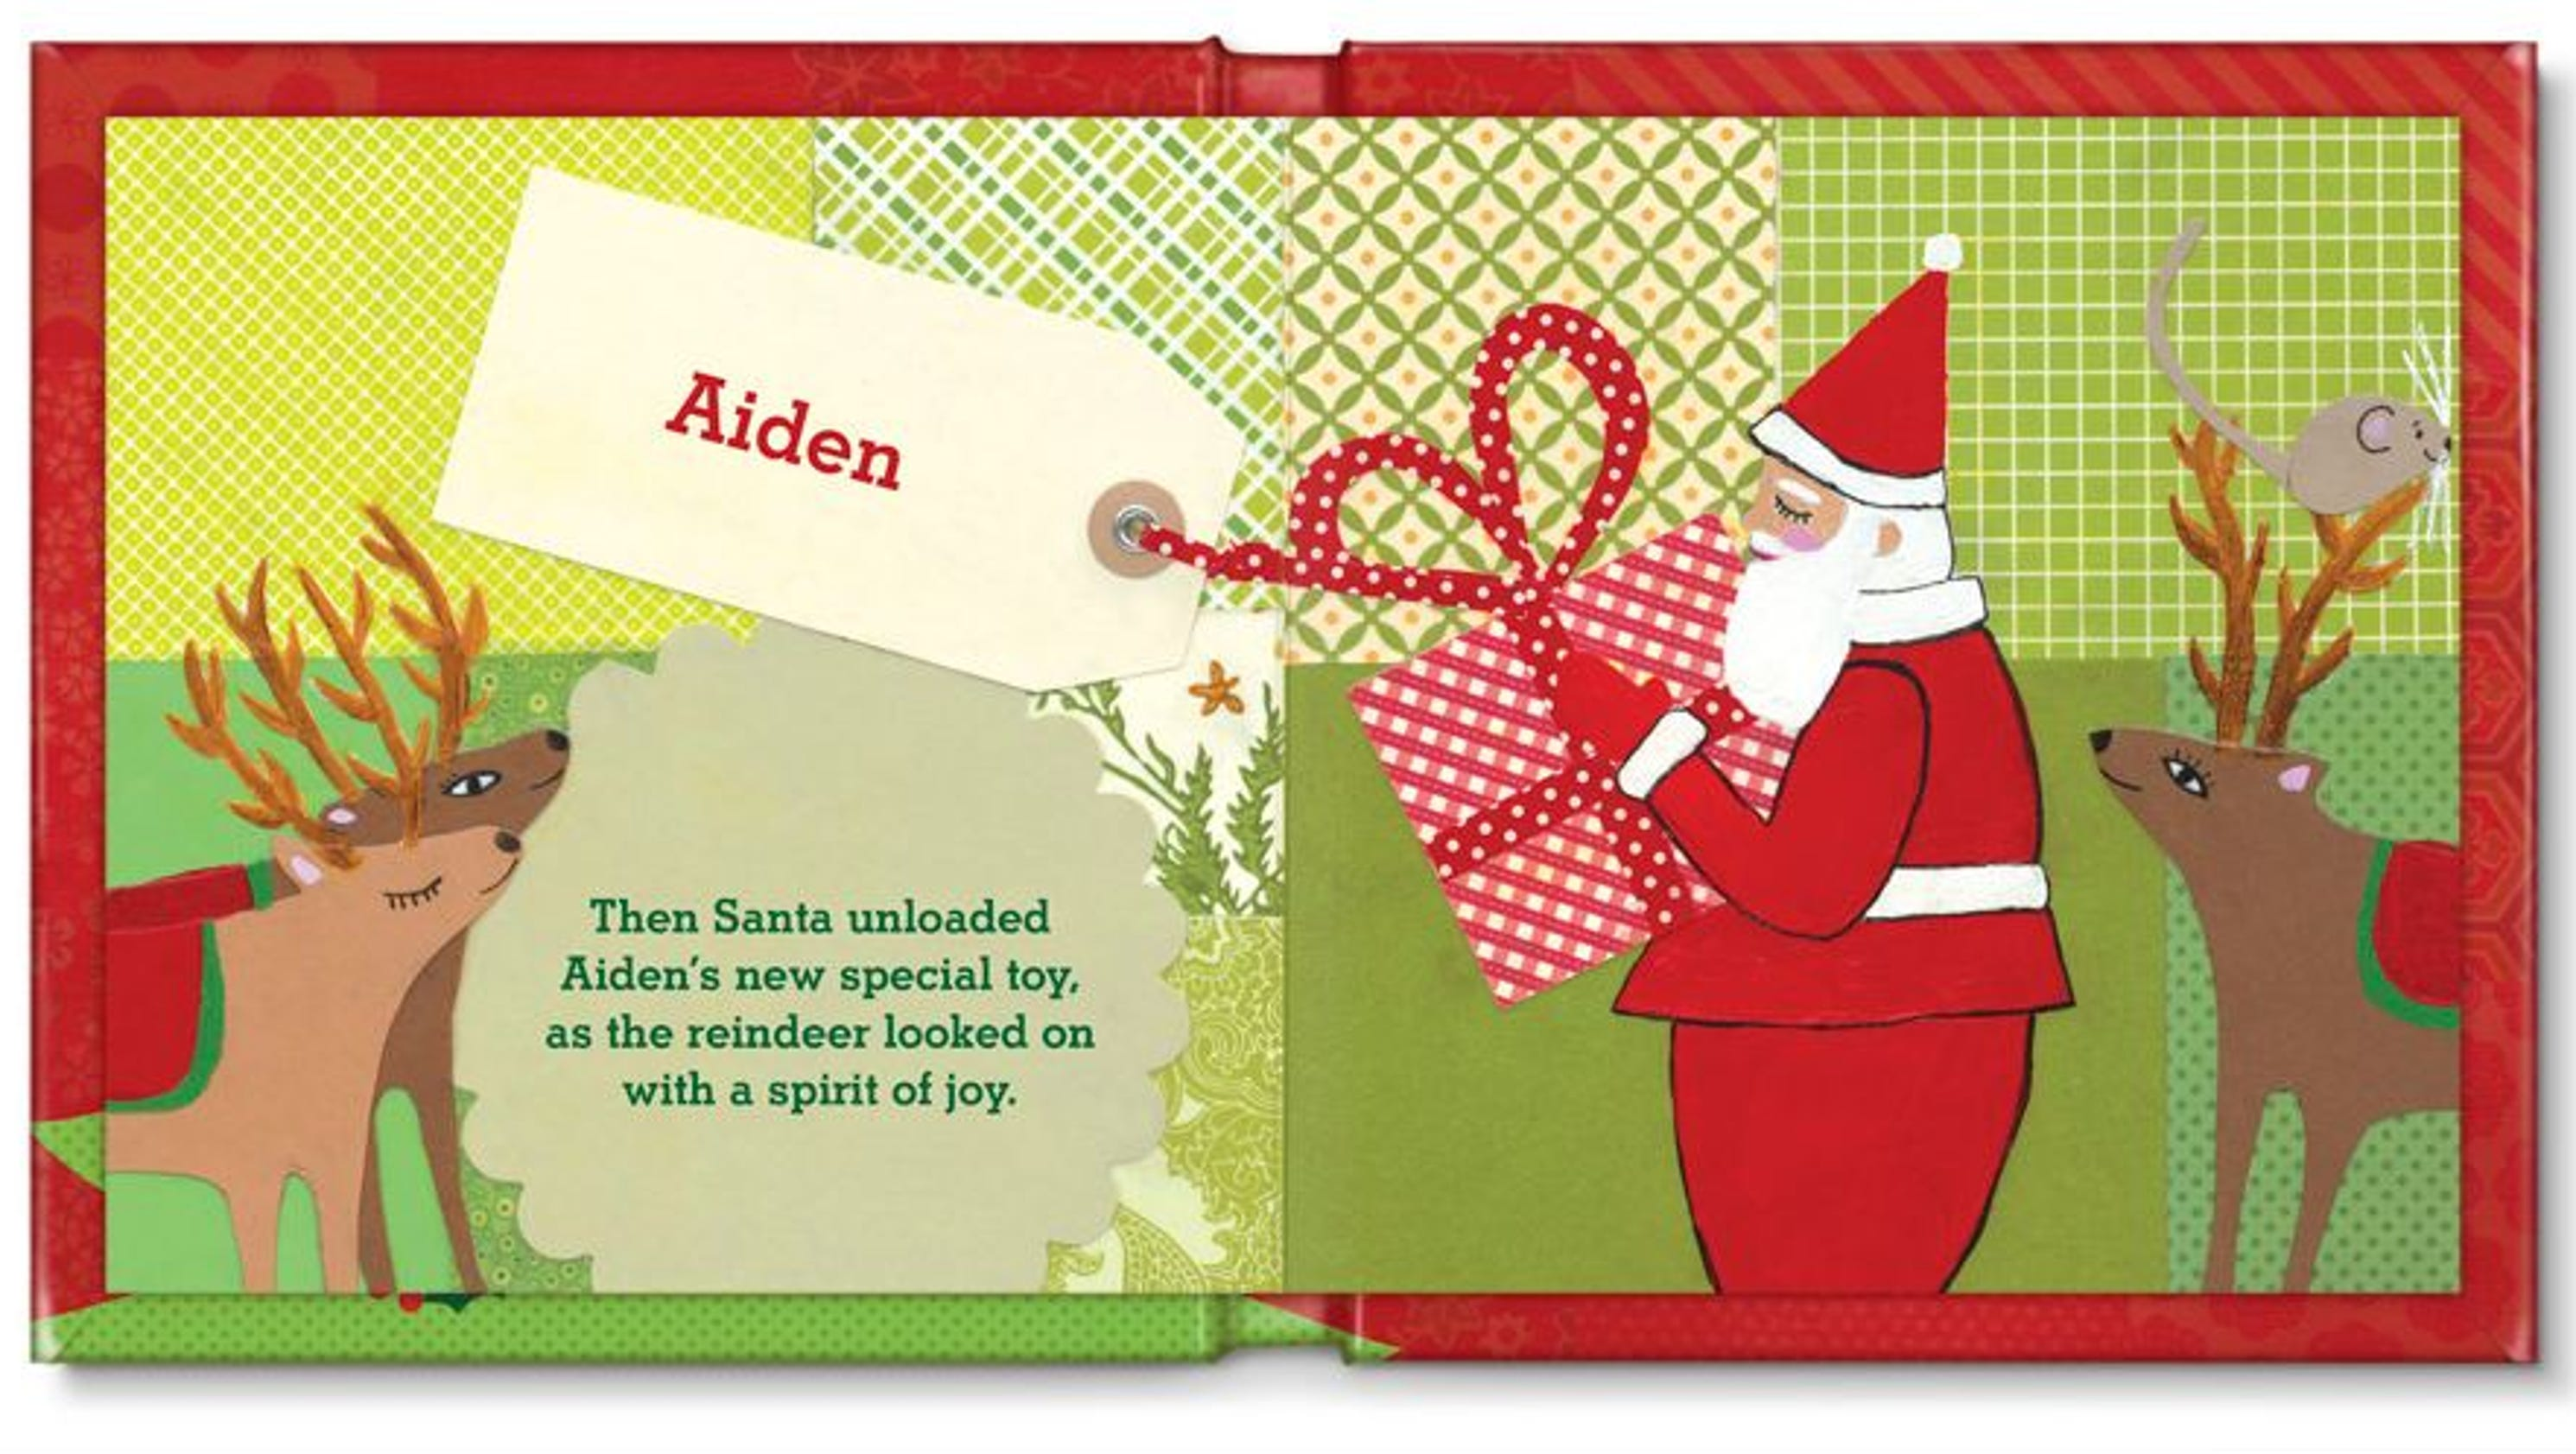 Holiday gifts: Personalized books for kids